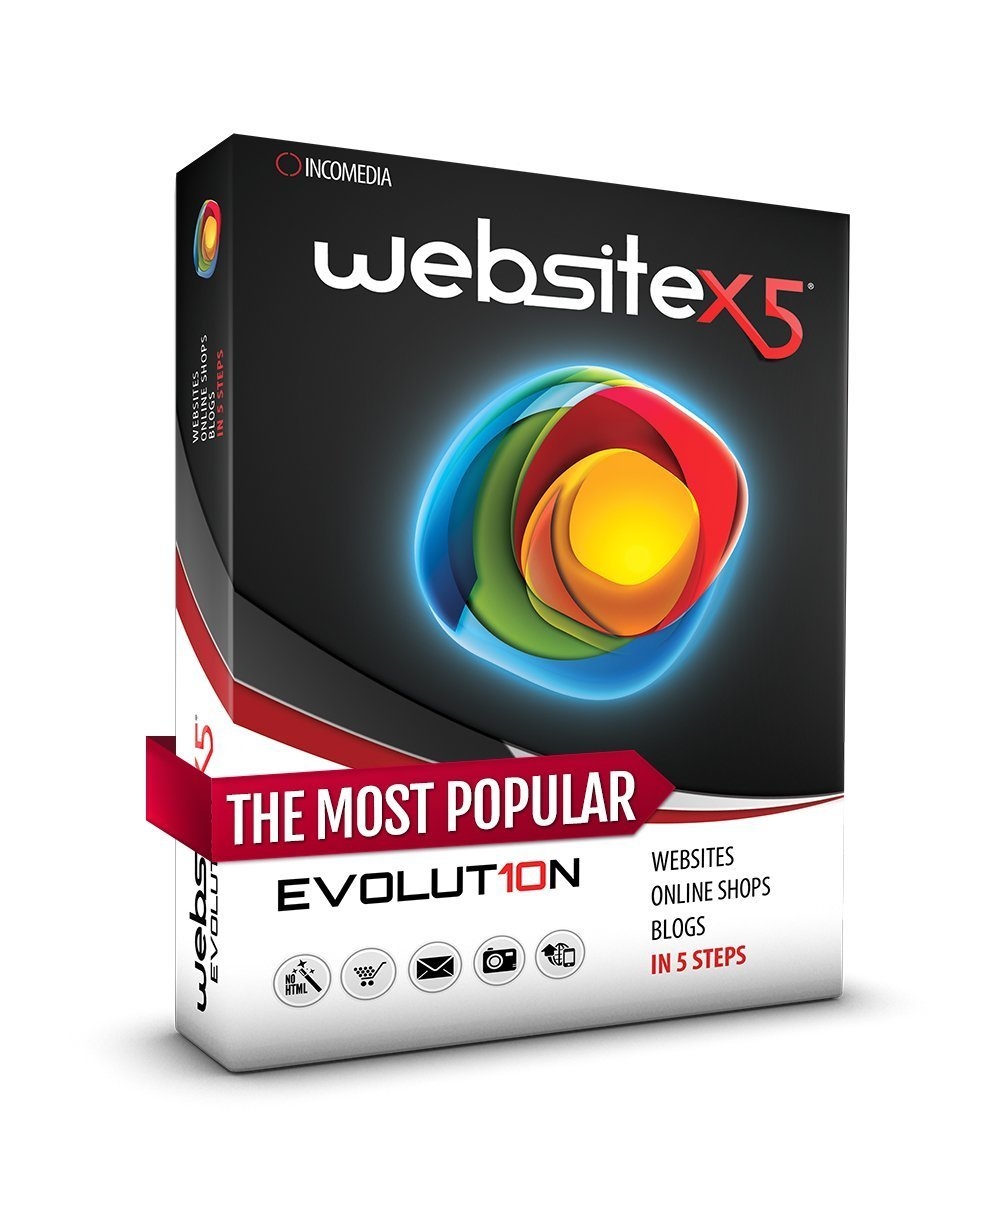 WebSite X5 Evolution 10 (PC) Boxed Product by Website X5